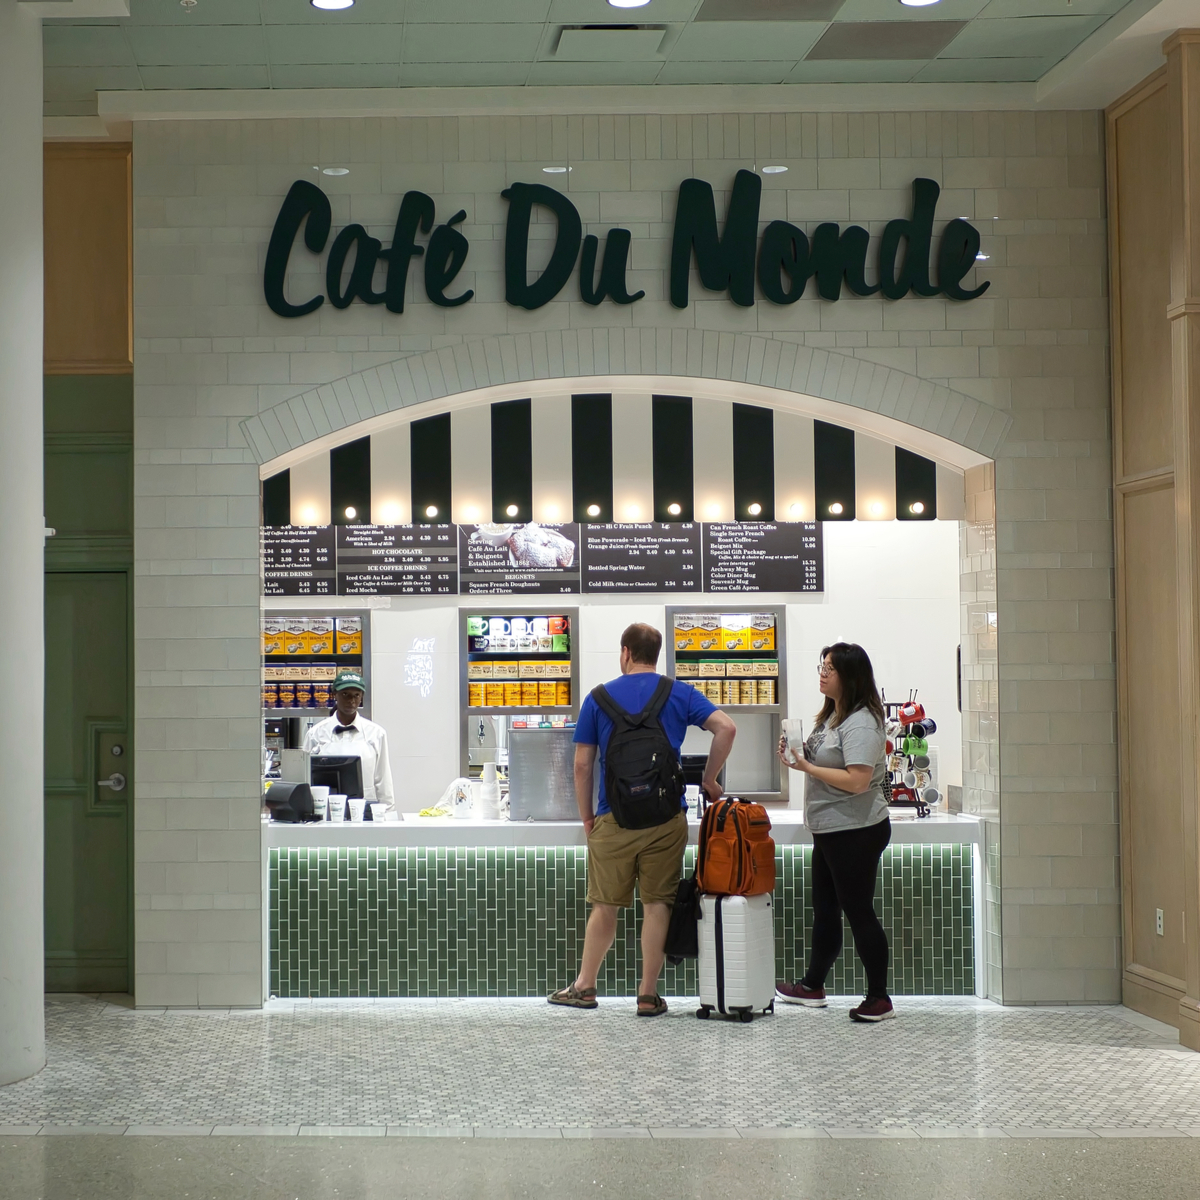 Cafe Du Monde at Louis Armstrong New Orleans International Airport.